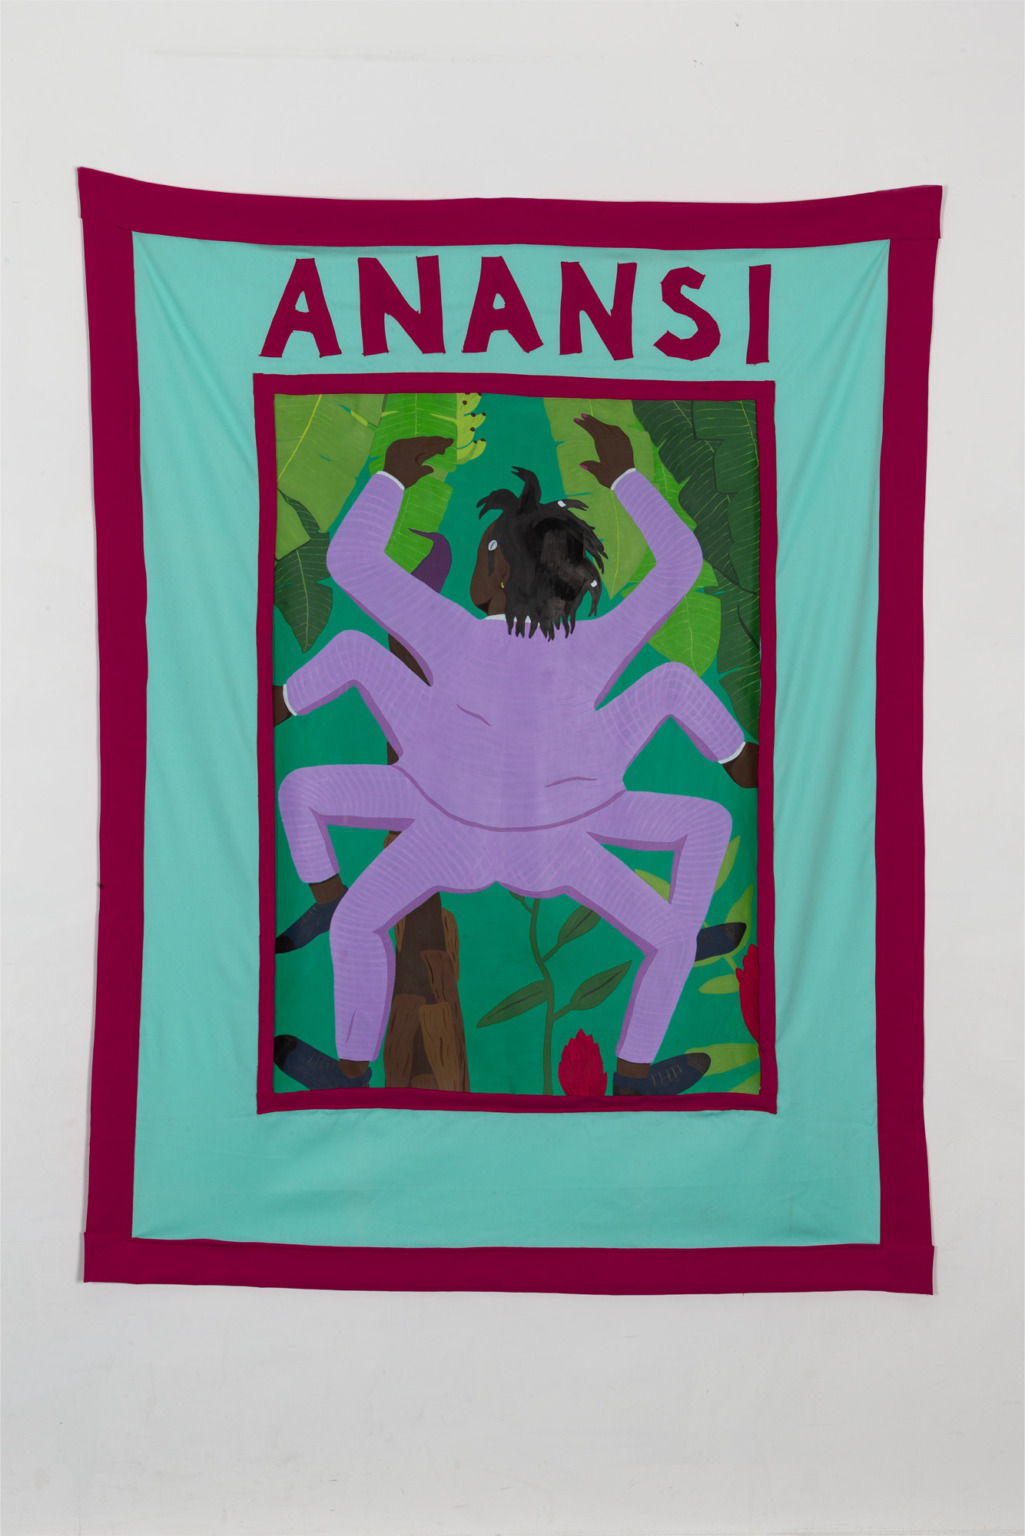 Painting of a Black figure with eight limbs in a lilac suit, with banana trees behind them. The painting is framed by a larger green textile with ANANSI written in red fabric at the top.